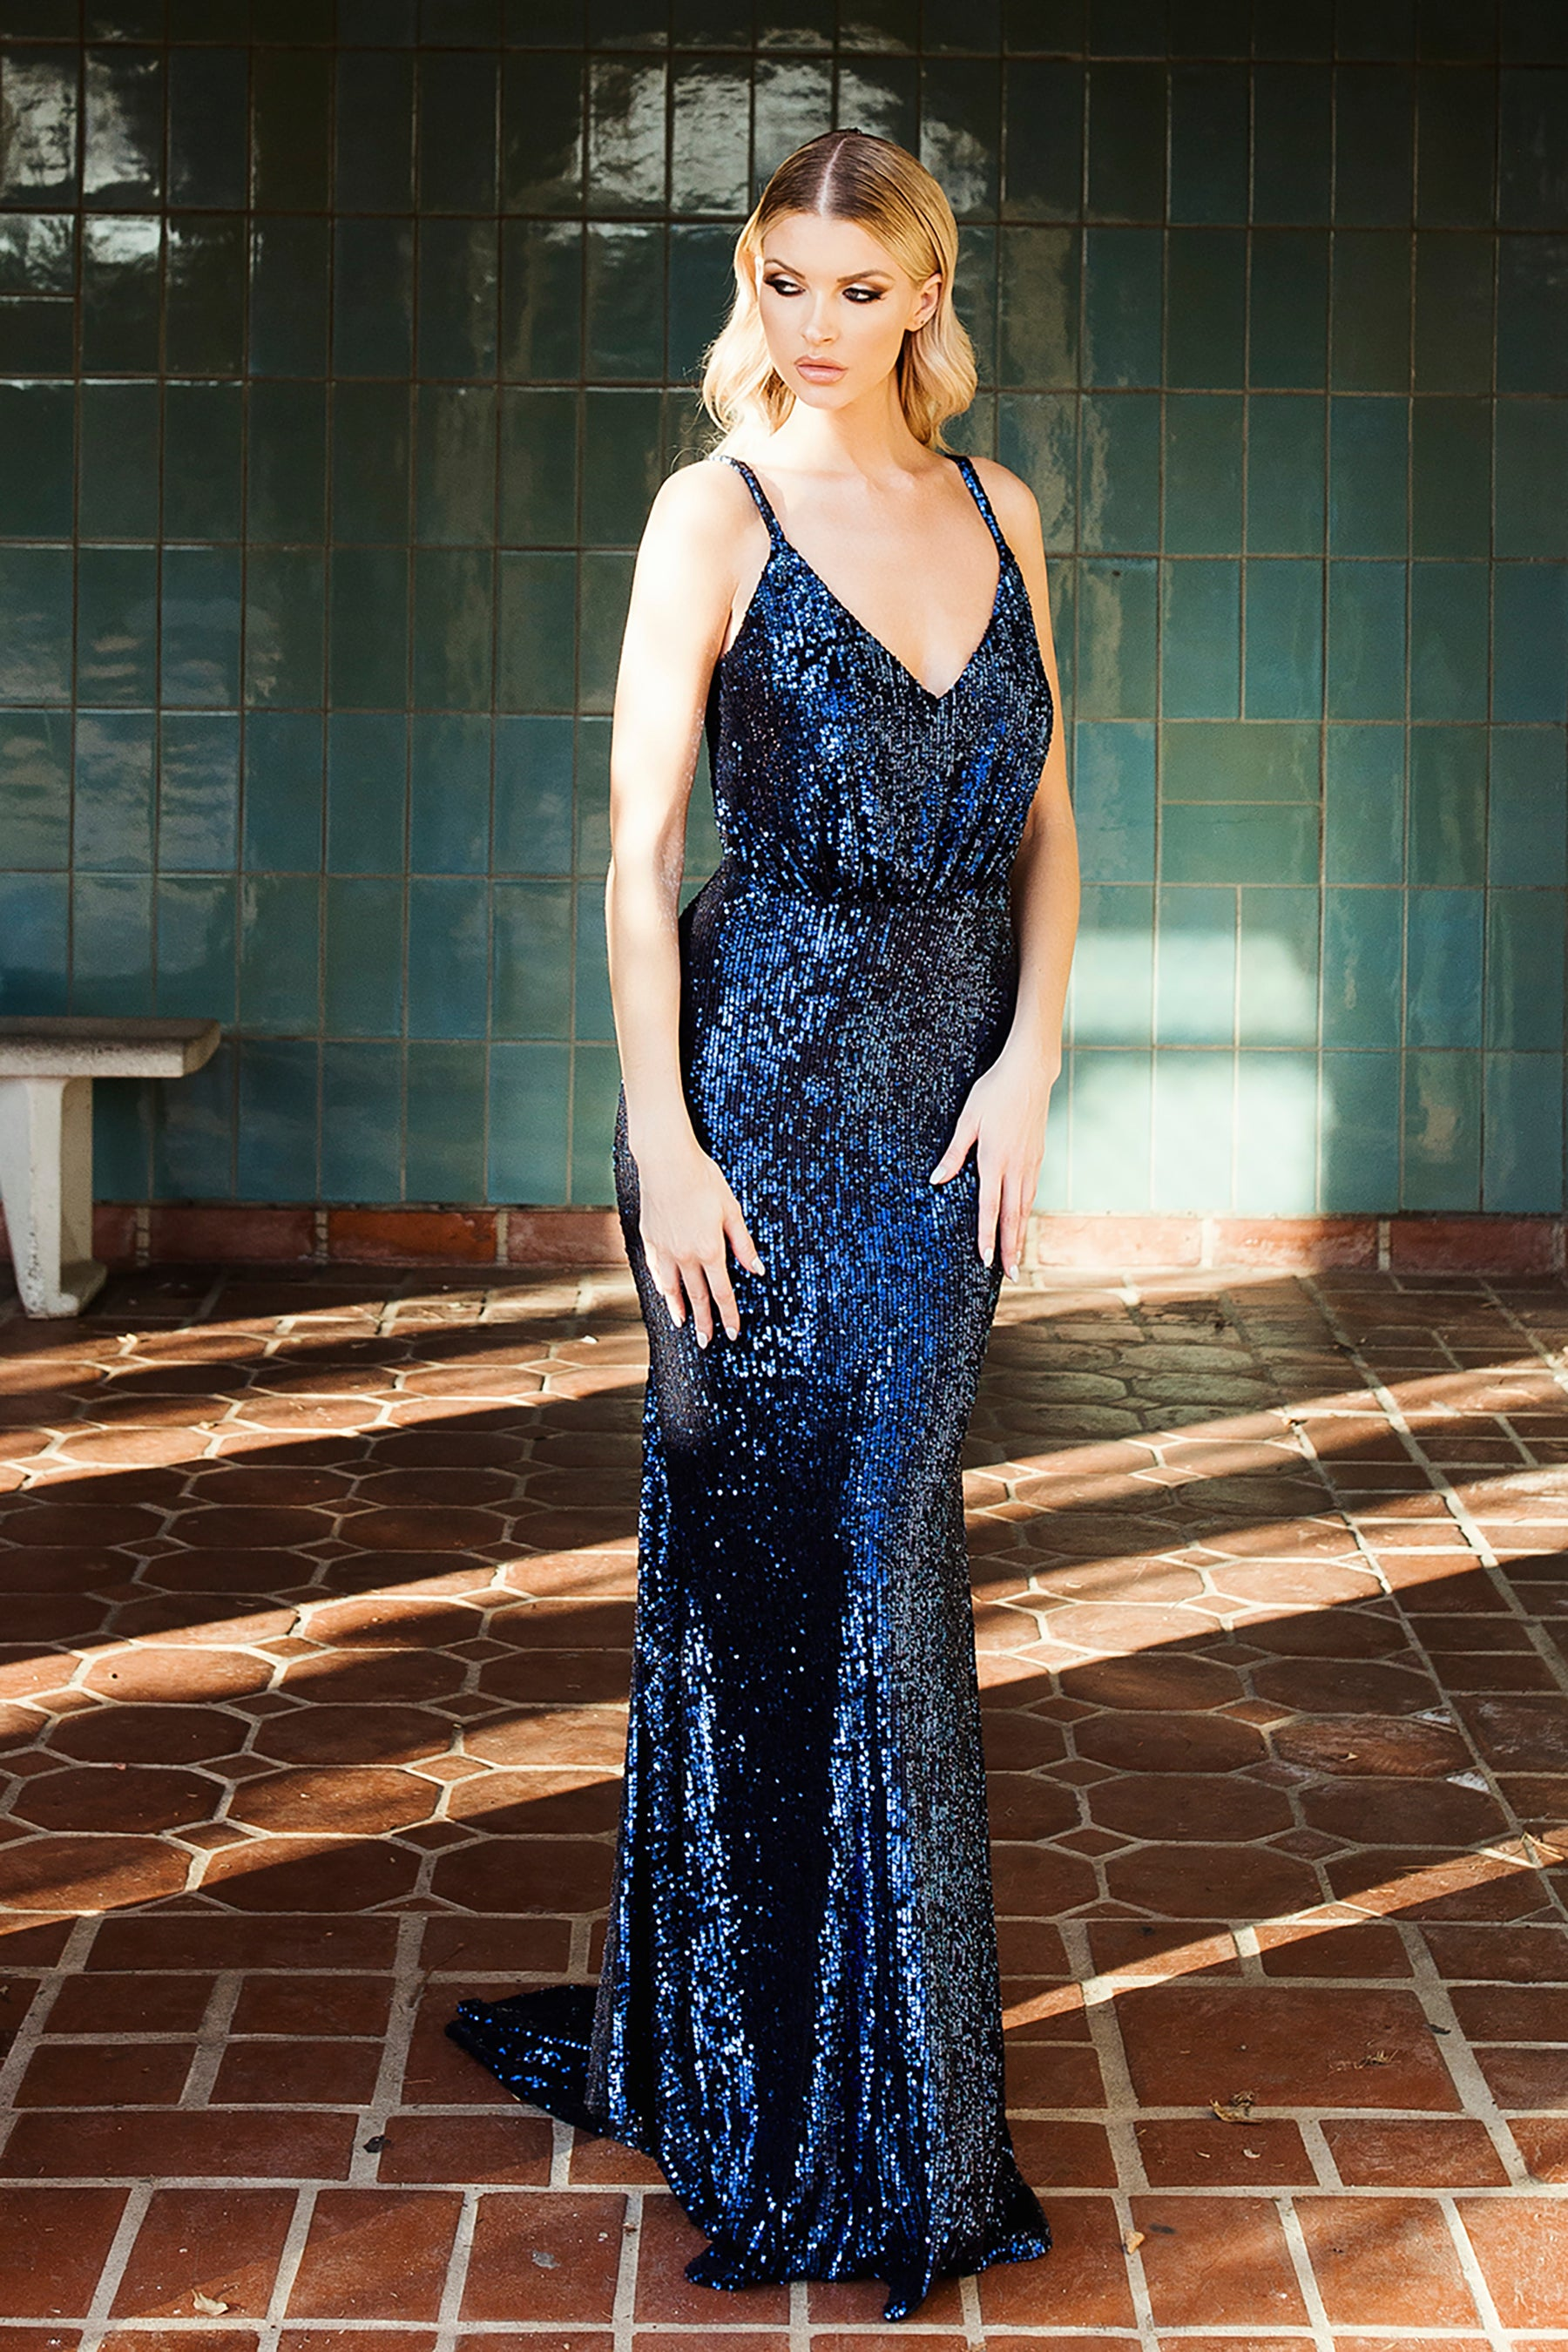 nicole bakti 6969 navy sequins dress